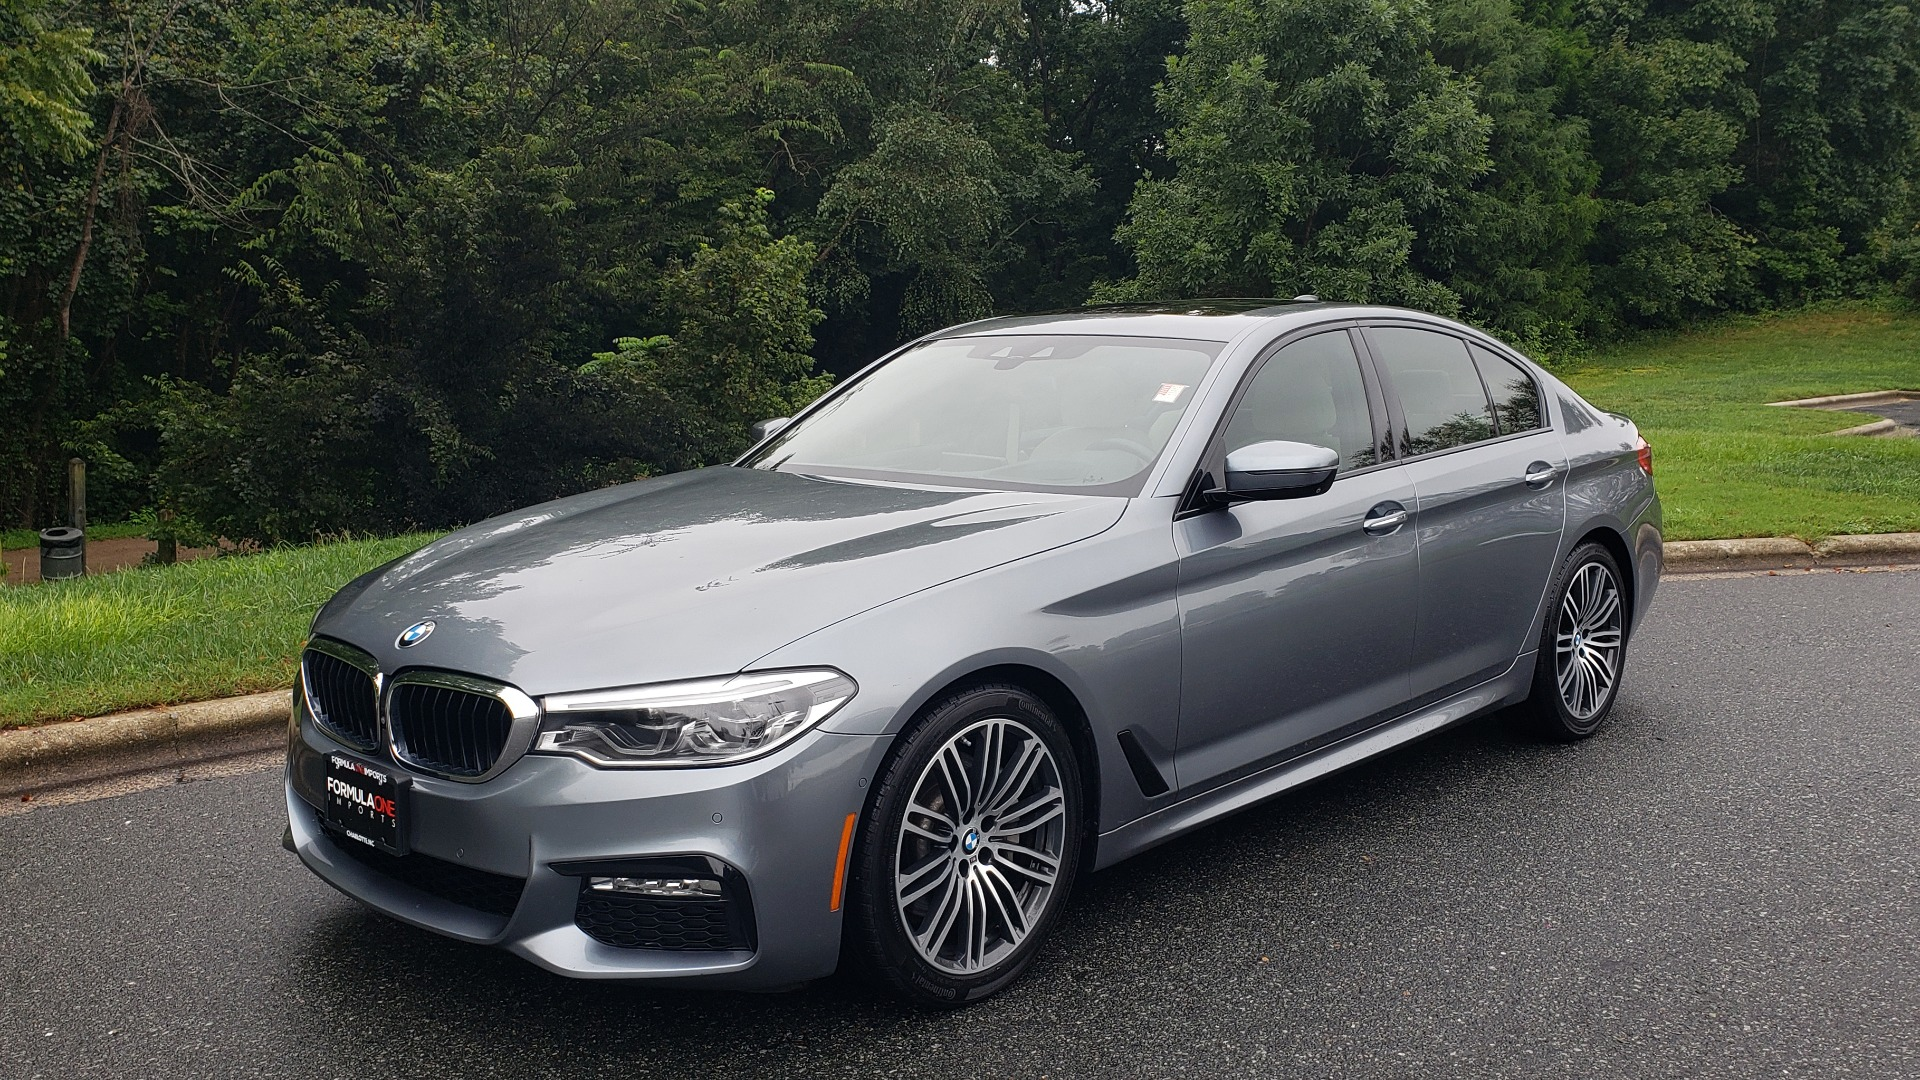 Used 2017 BMW 5 SERIES 530I M-SPORT / PREM PKG / DRVR ASST PLUS / LIGHTING / PREM SND for sale Sold at Formula Imports in Charlotte NC 28227 1